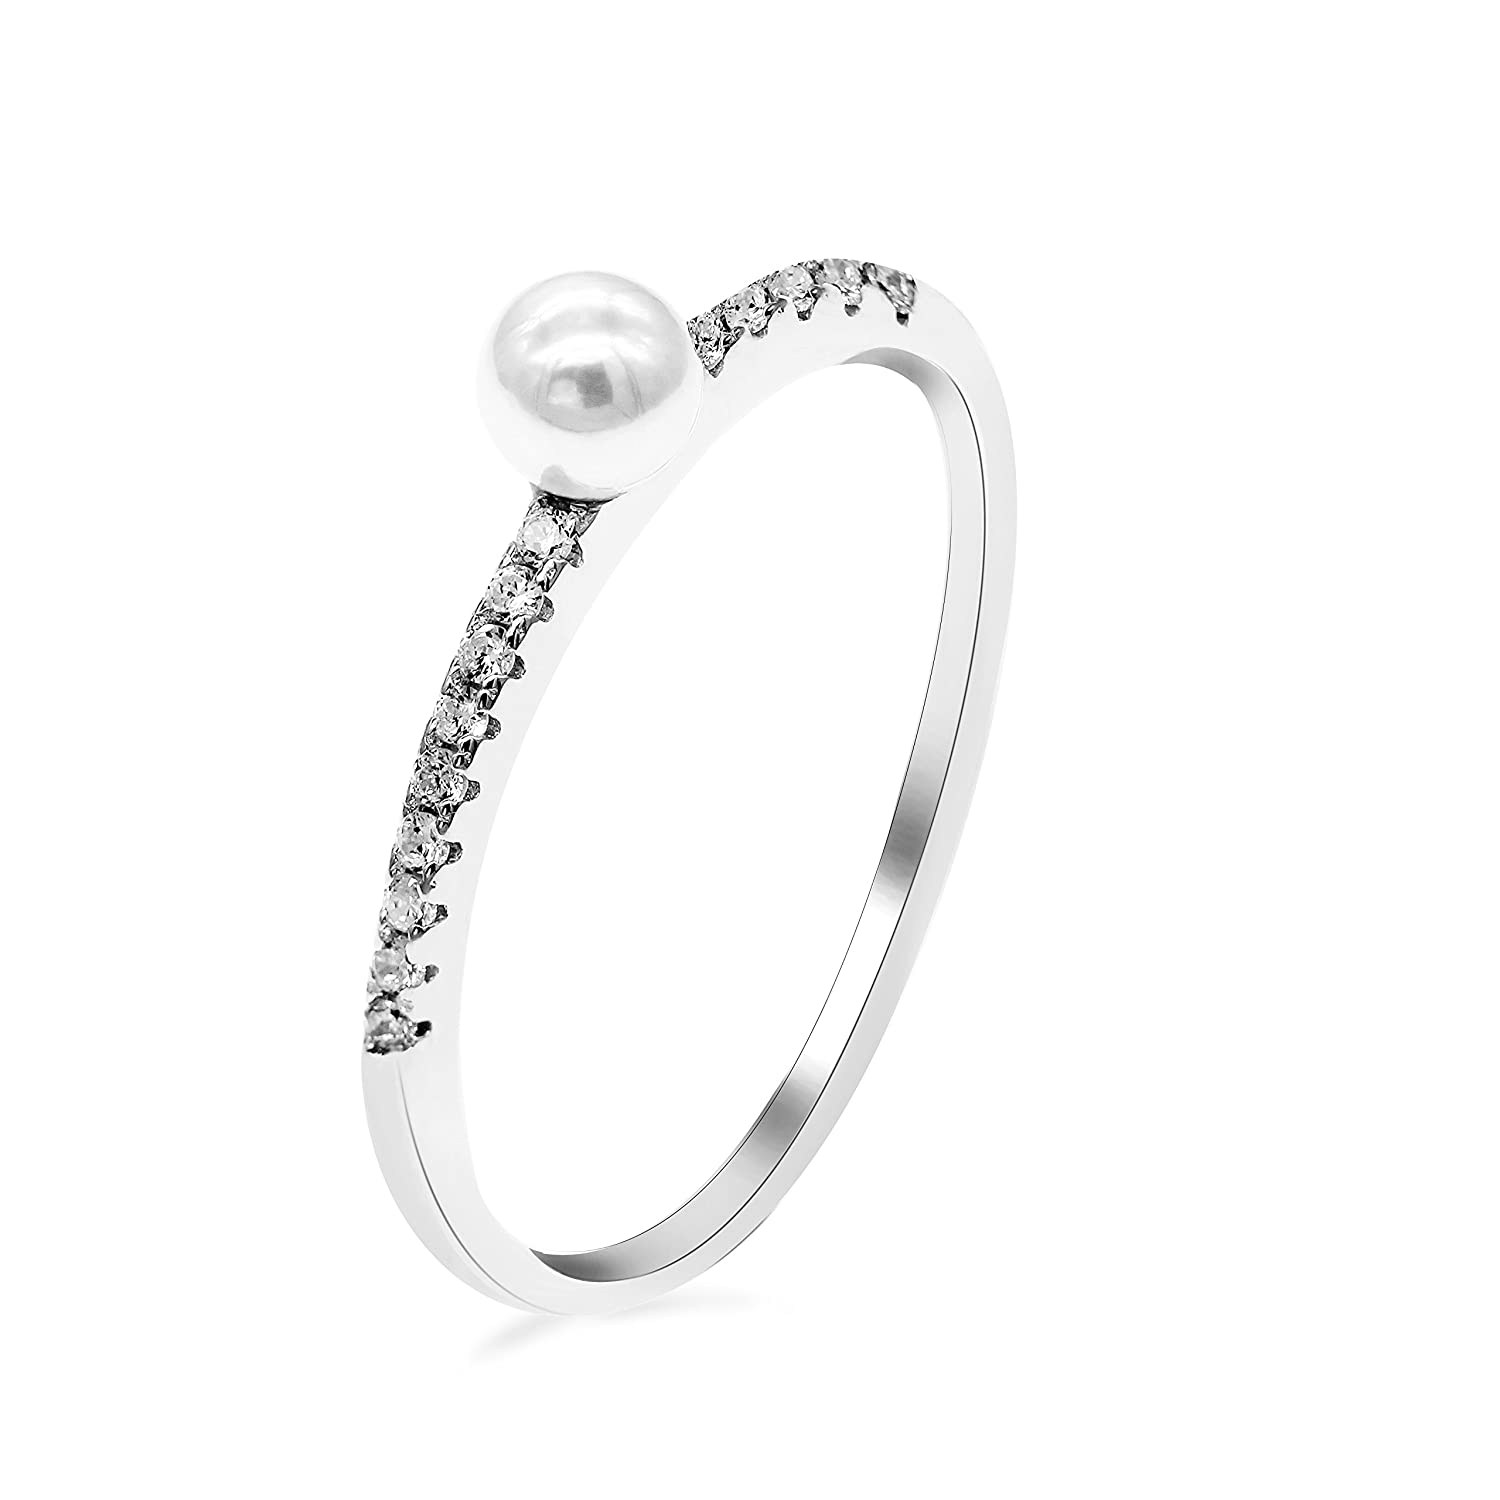 Uloveido 1.2g 925 Sterling Silver Half Eternity Band Simulated White Pearl Solitaire Stackable CZ Ring for Women, Gift Boxed (Size 6 7 8 9 10) WE248